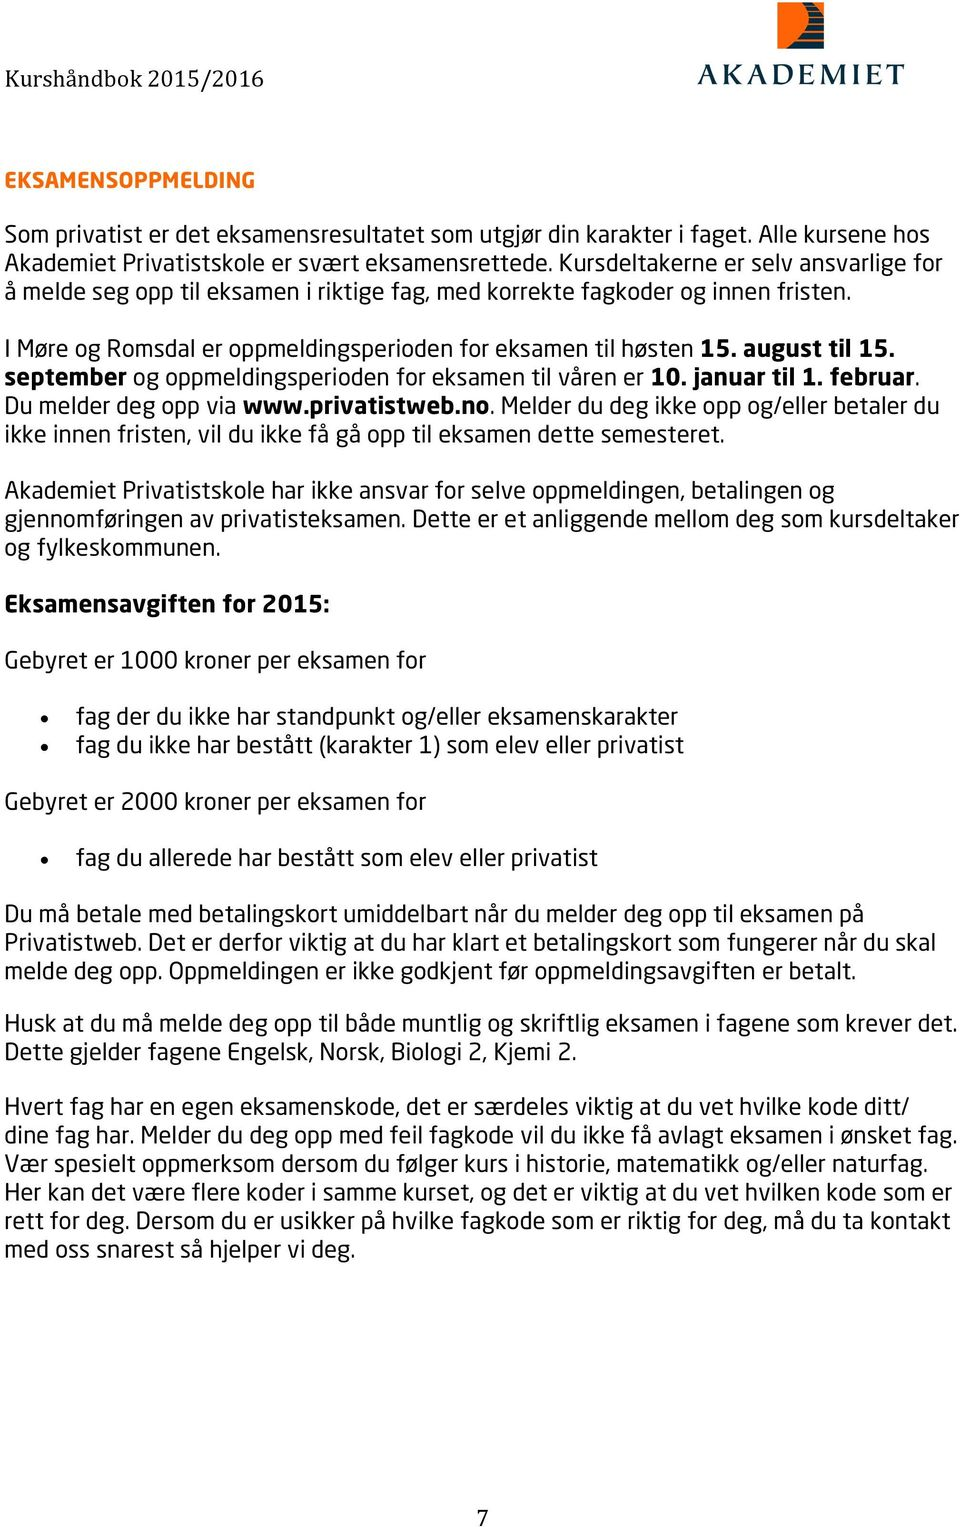 august til 15. september og oppmeldingsperioden for eksamen til våren er 10. januar til 1. februar. Du melder deg opp via www.privatistweb.no.